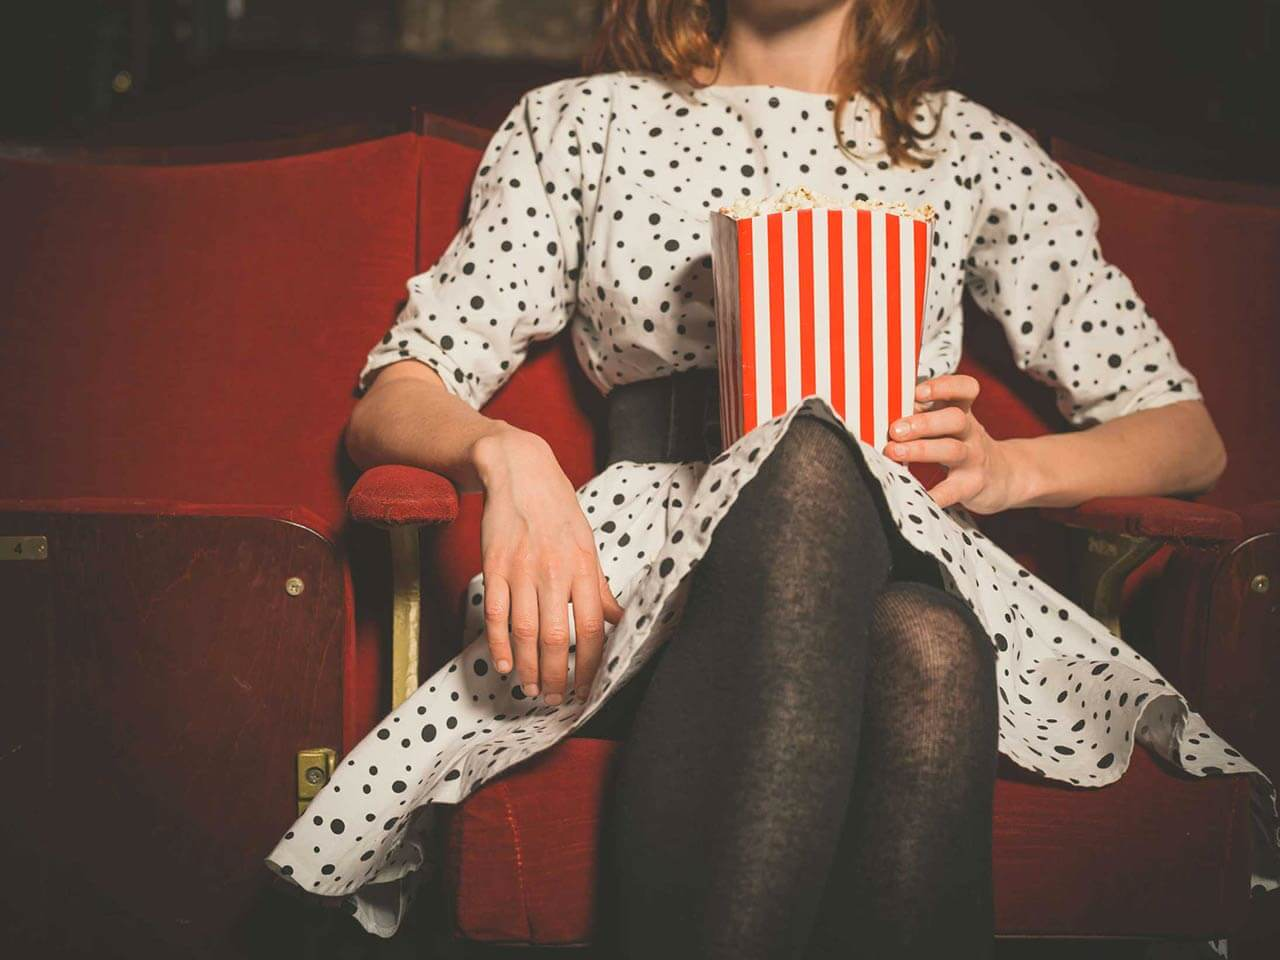 Woman sitting in cinema with popcorn